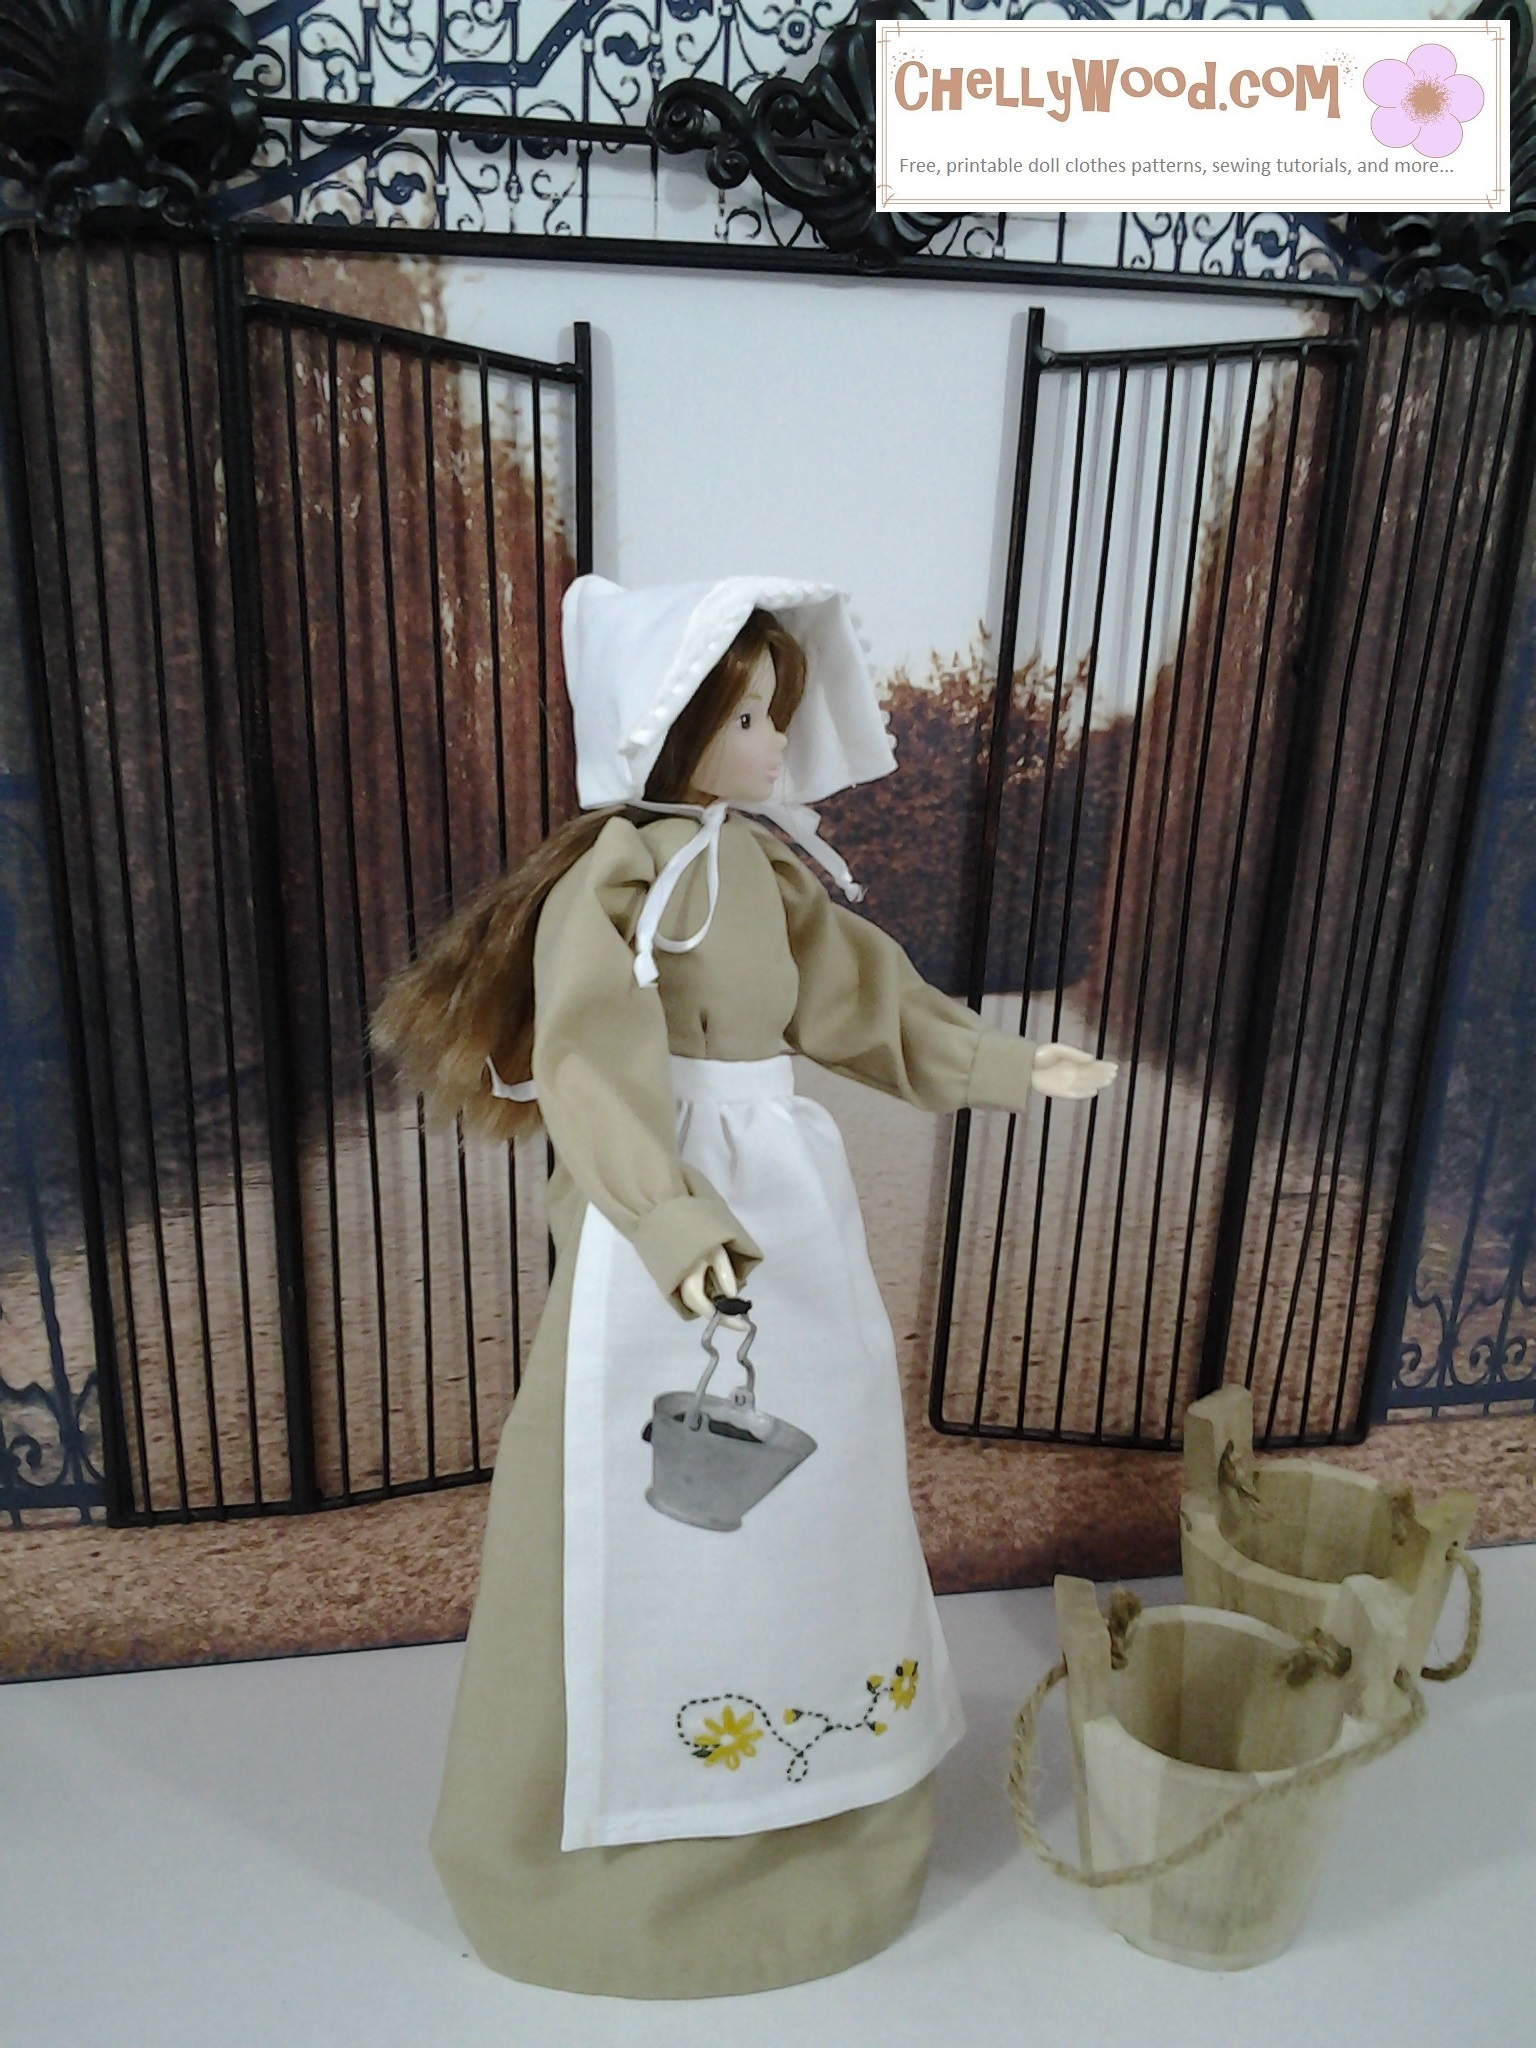 The image shows a Momoko doll in a dress, apron, and bonnet. The apron is embroidered with tiny flowers and leaves. If you'd like to make these doll clothes, please click on the link in the caption for free printable sewing patterns and tutorial videos for making these doll clothes.